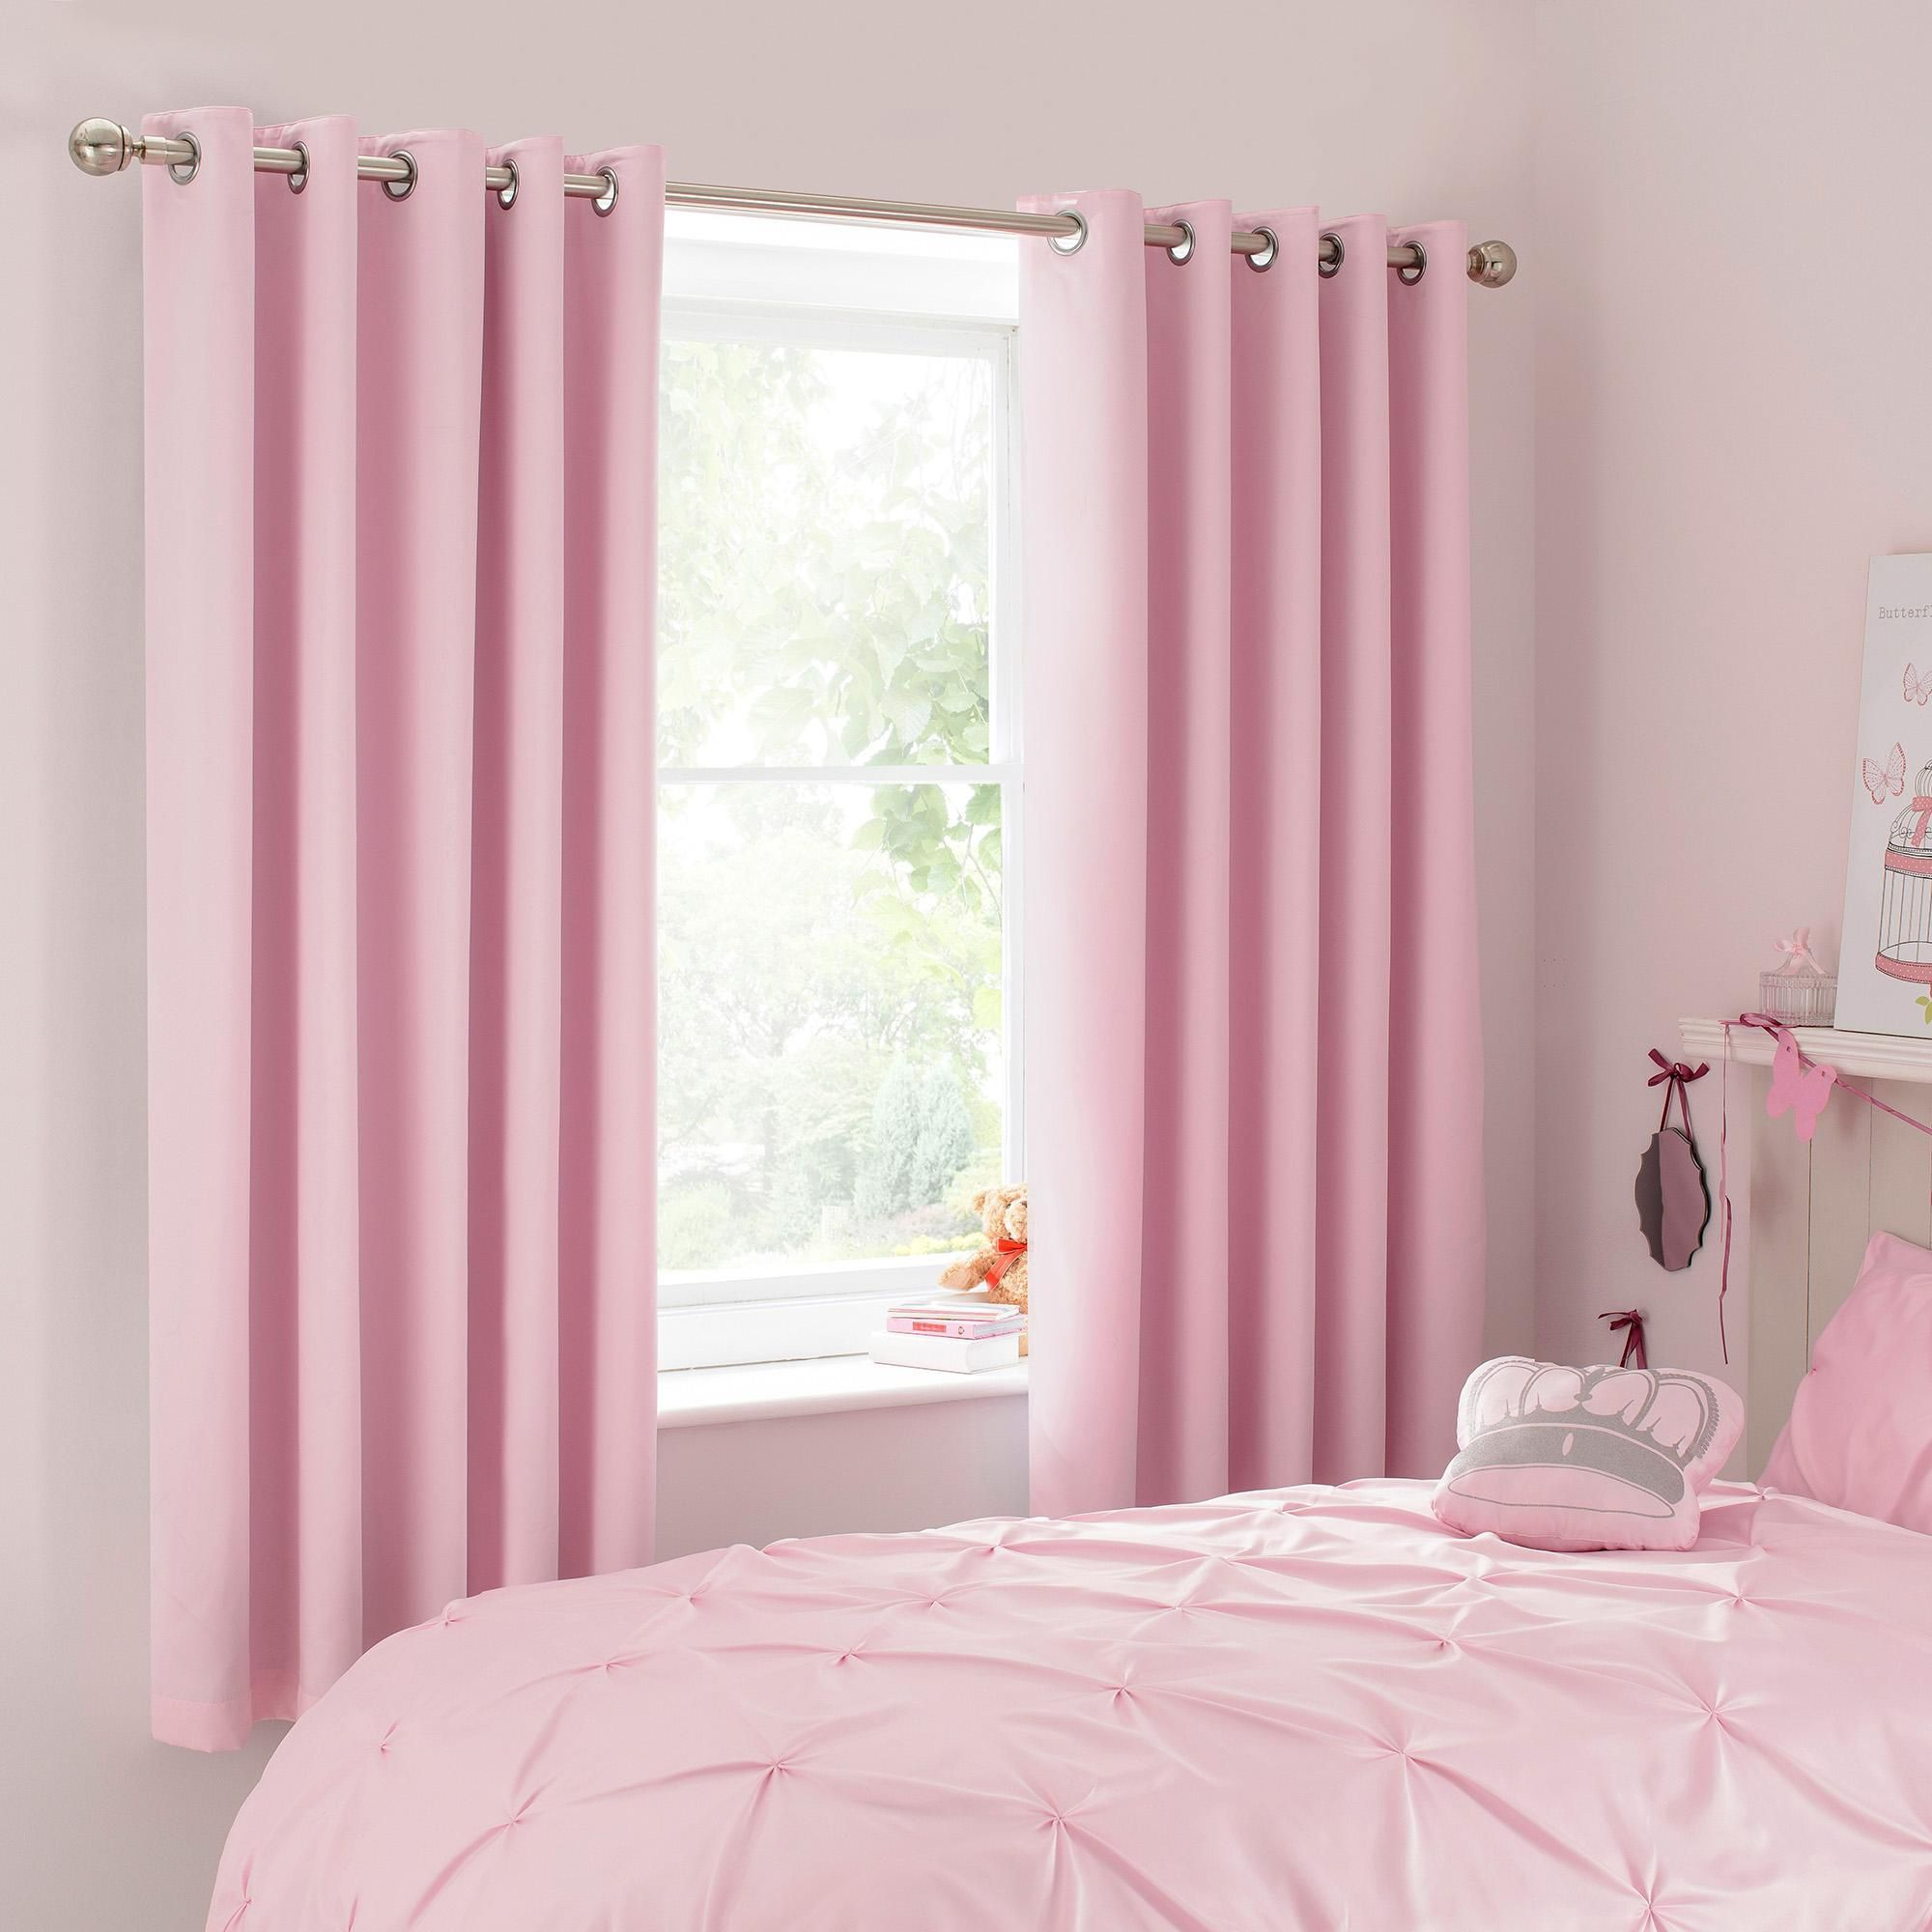 Add a burst of colour to your child's bedroom with these